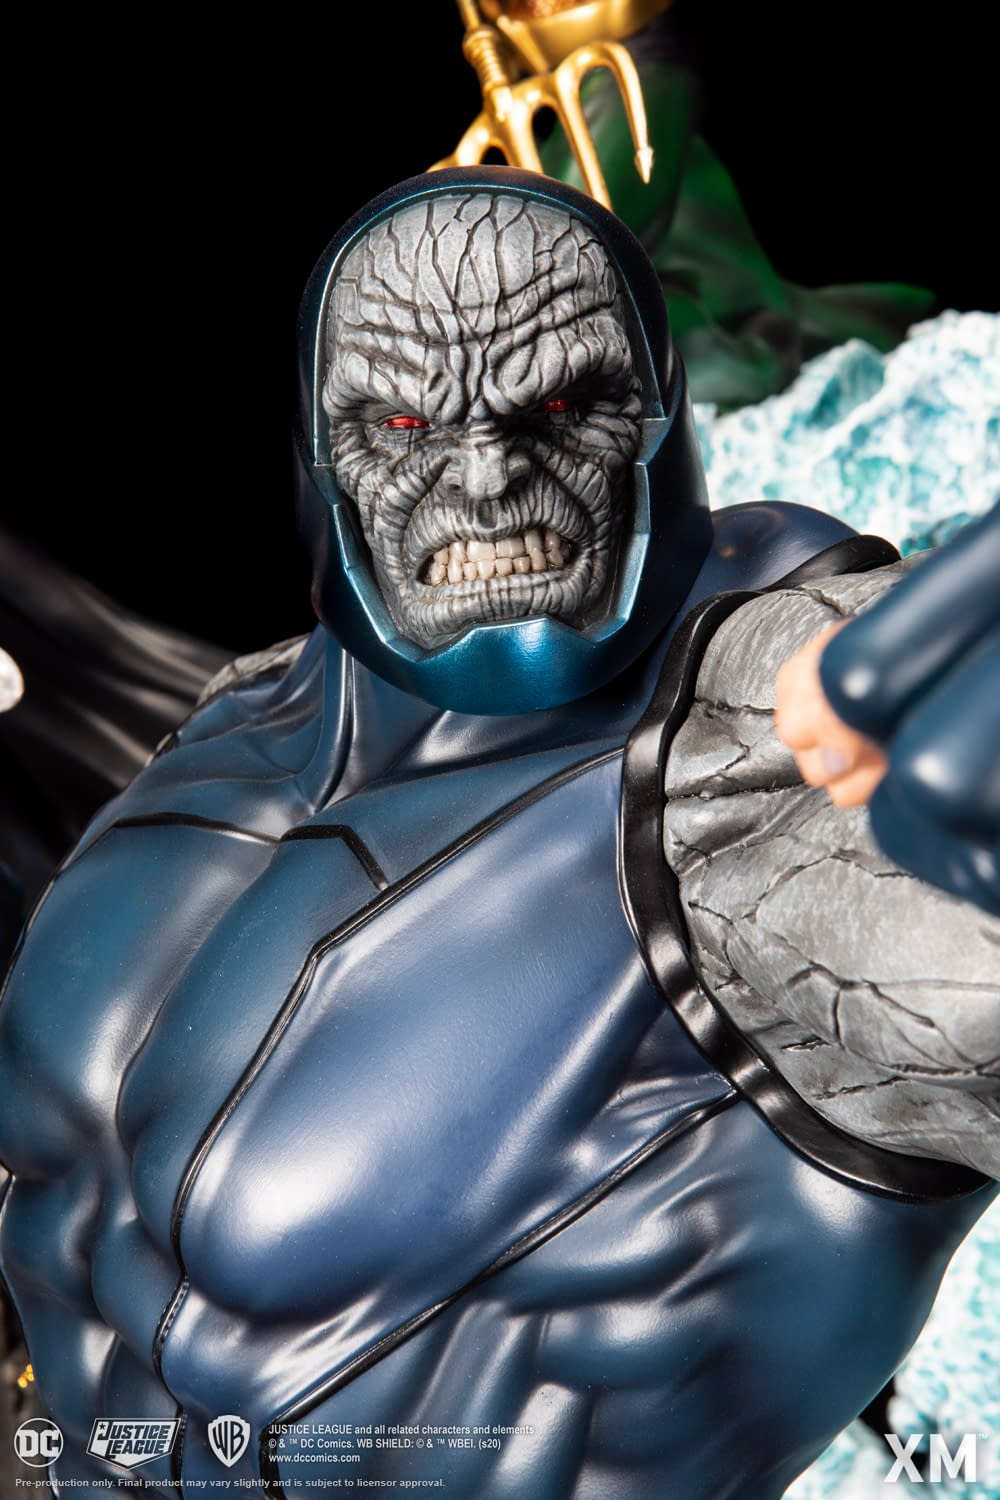 The Justice League Take on Darkseid in Massive Statue from XM Studios